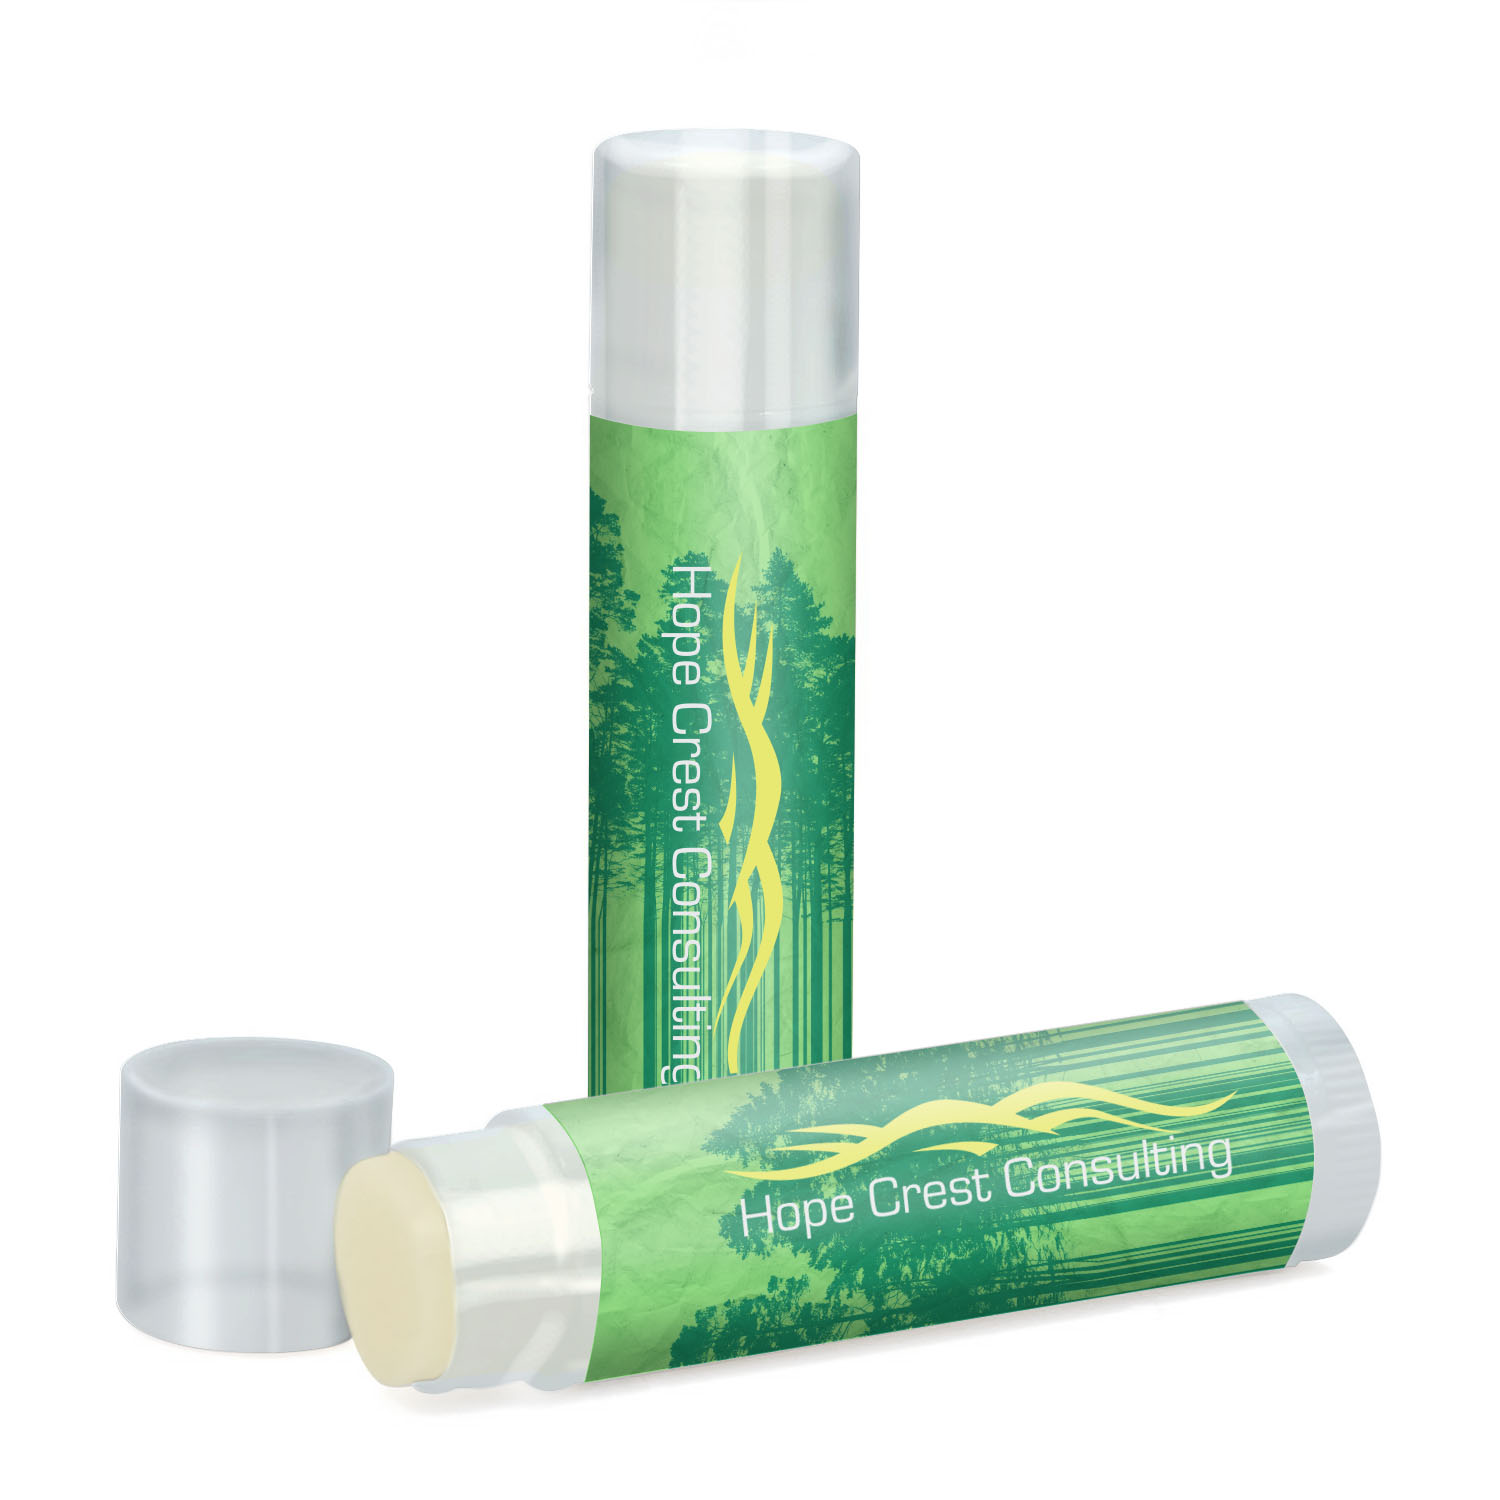 Fabulous Flavors Lip Balm in Clear Tube, SPF-15, Full Color Imprint